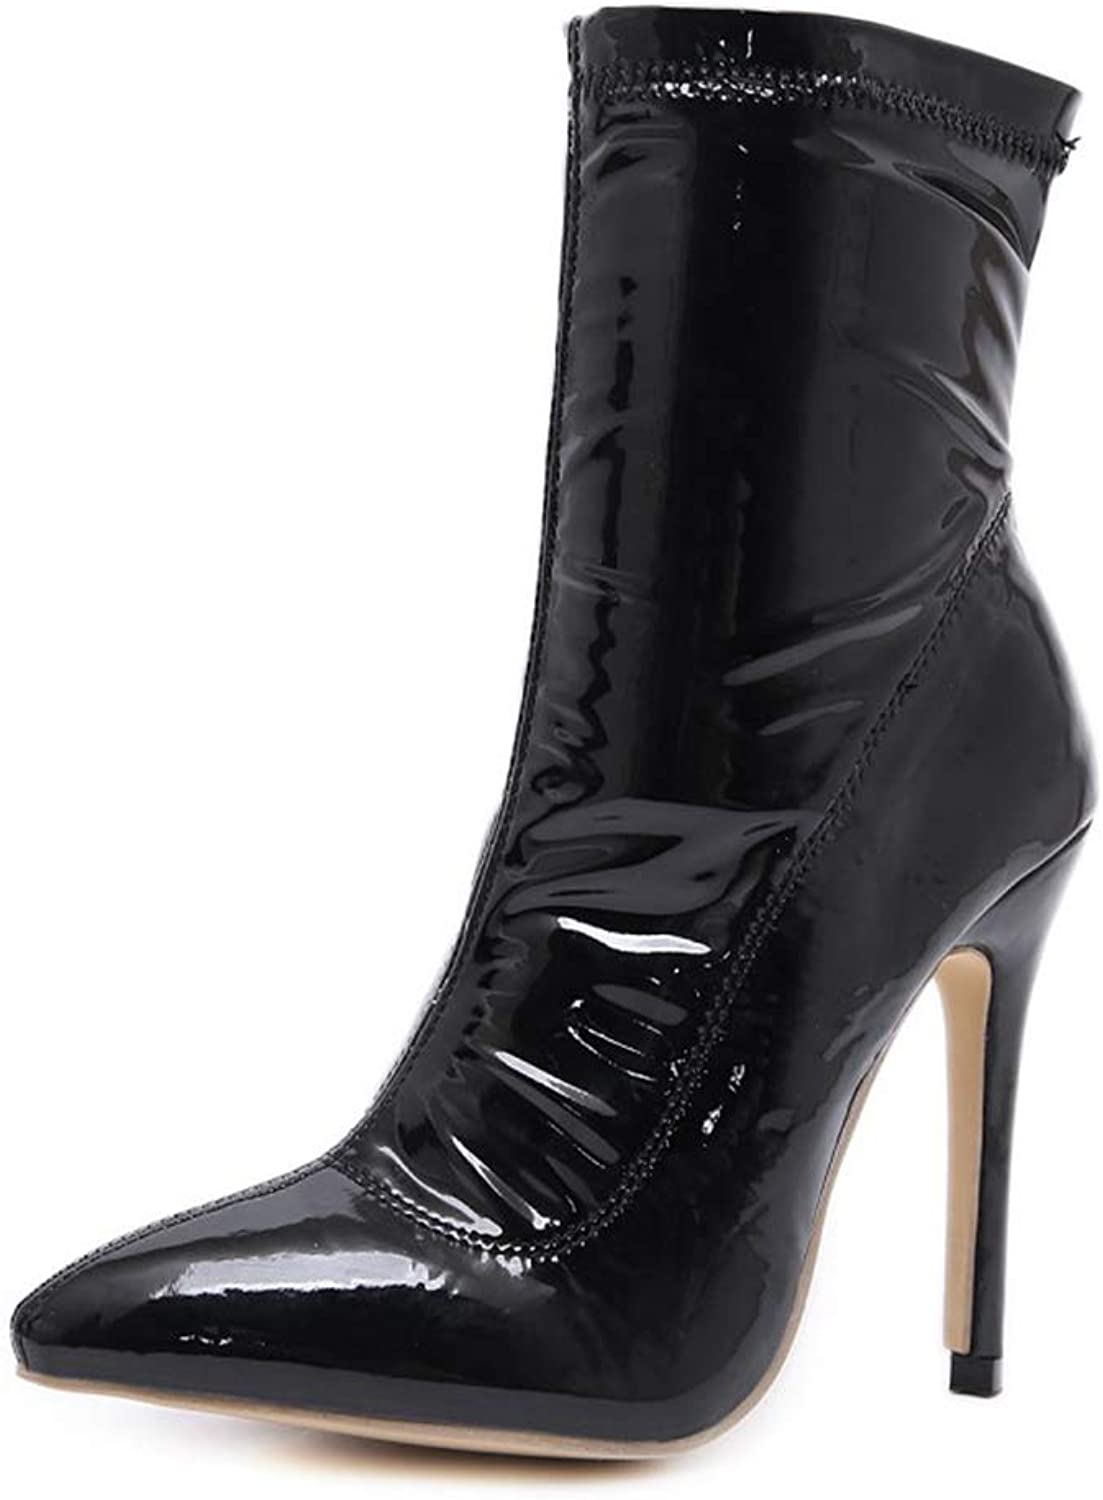 LVYING Women's Classic Pointed Toe Ankle Boots Stiletto High Heel Short Booties Patent Leather shoes